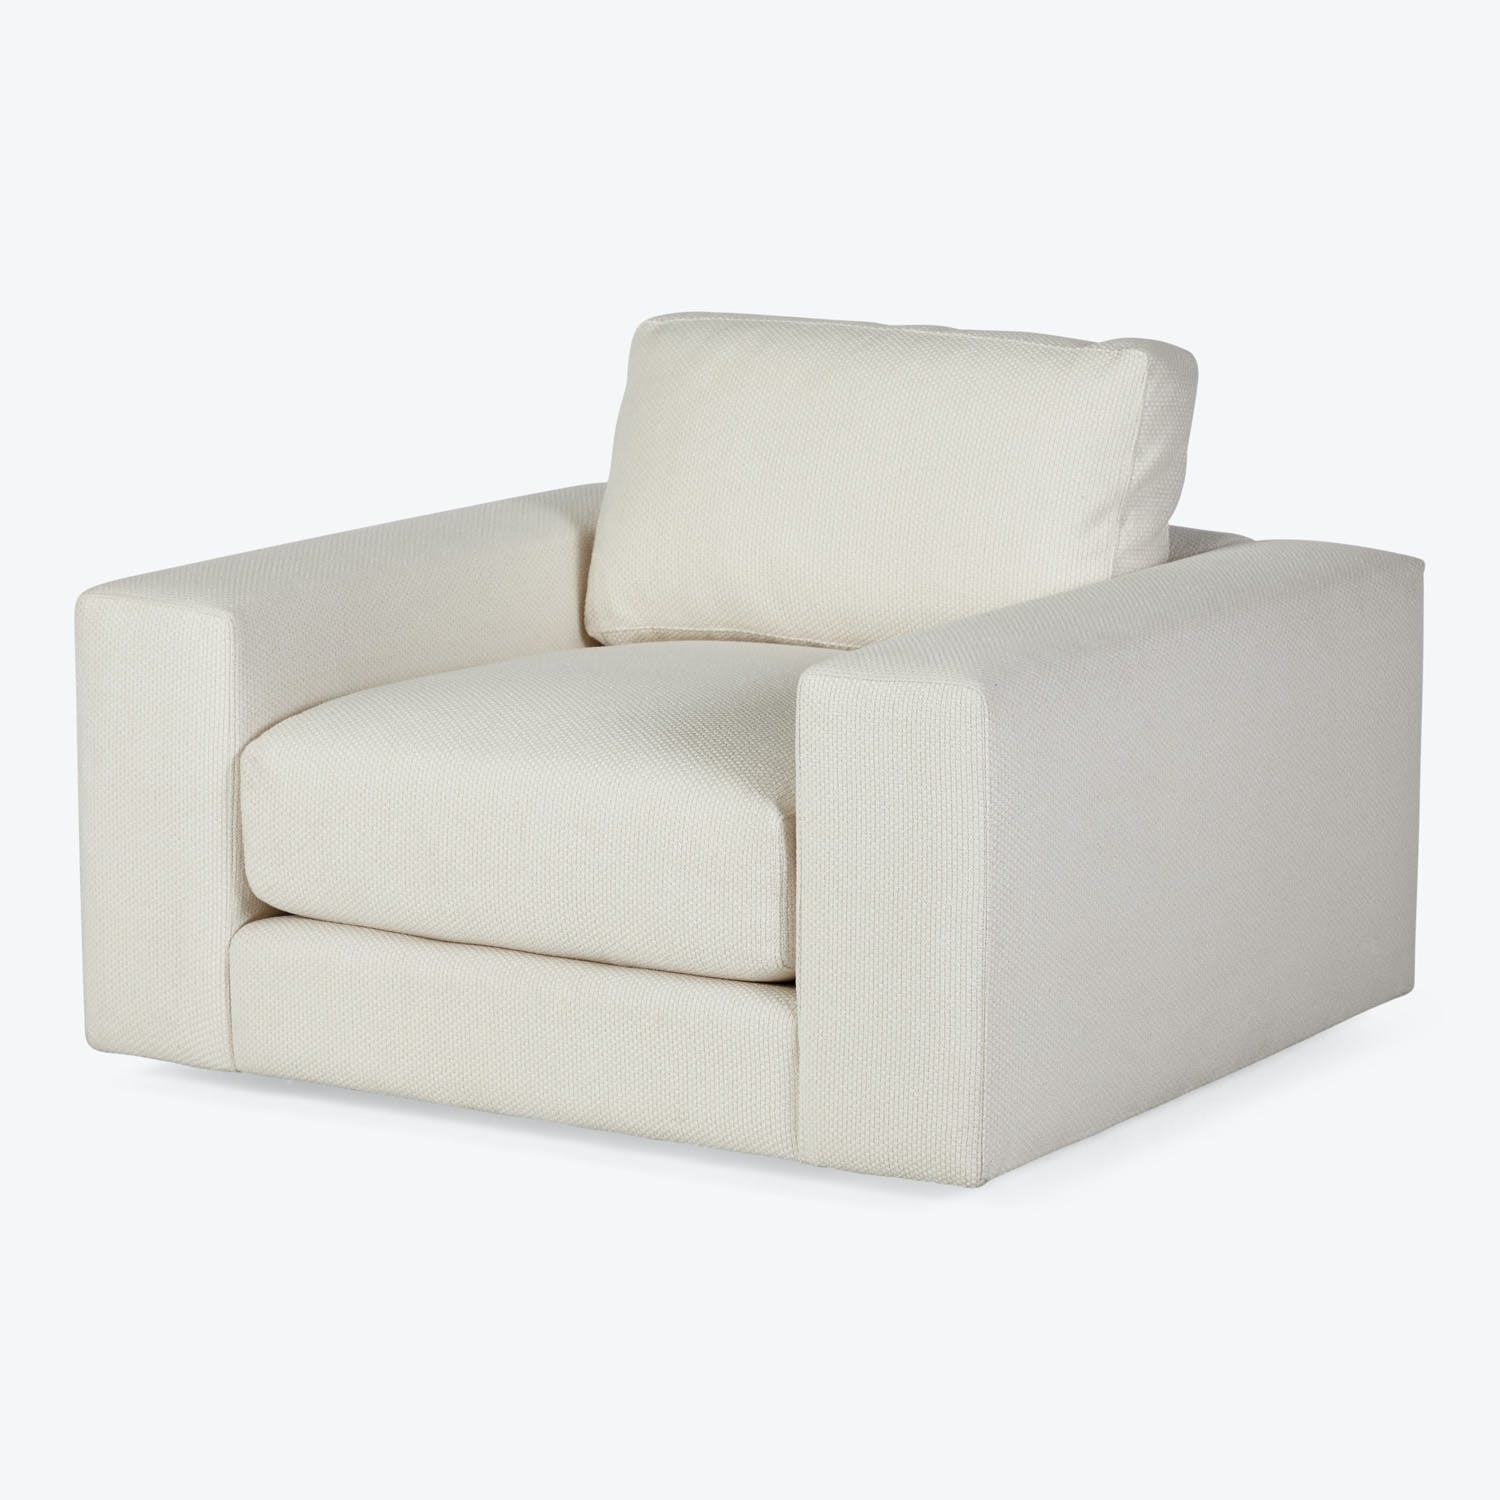 Central Swivel Chair